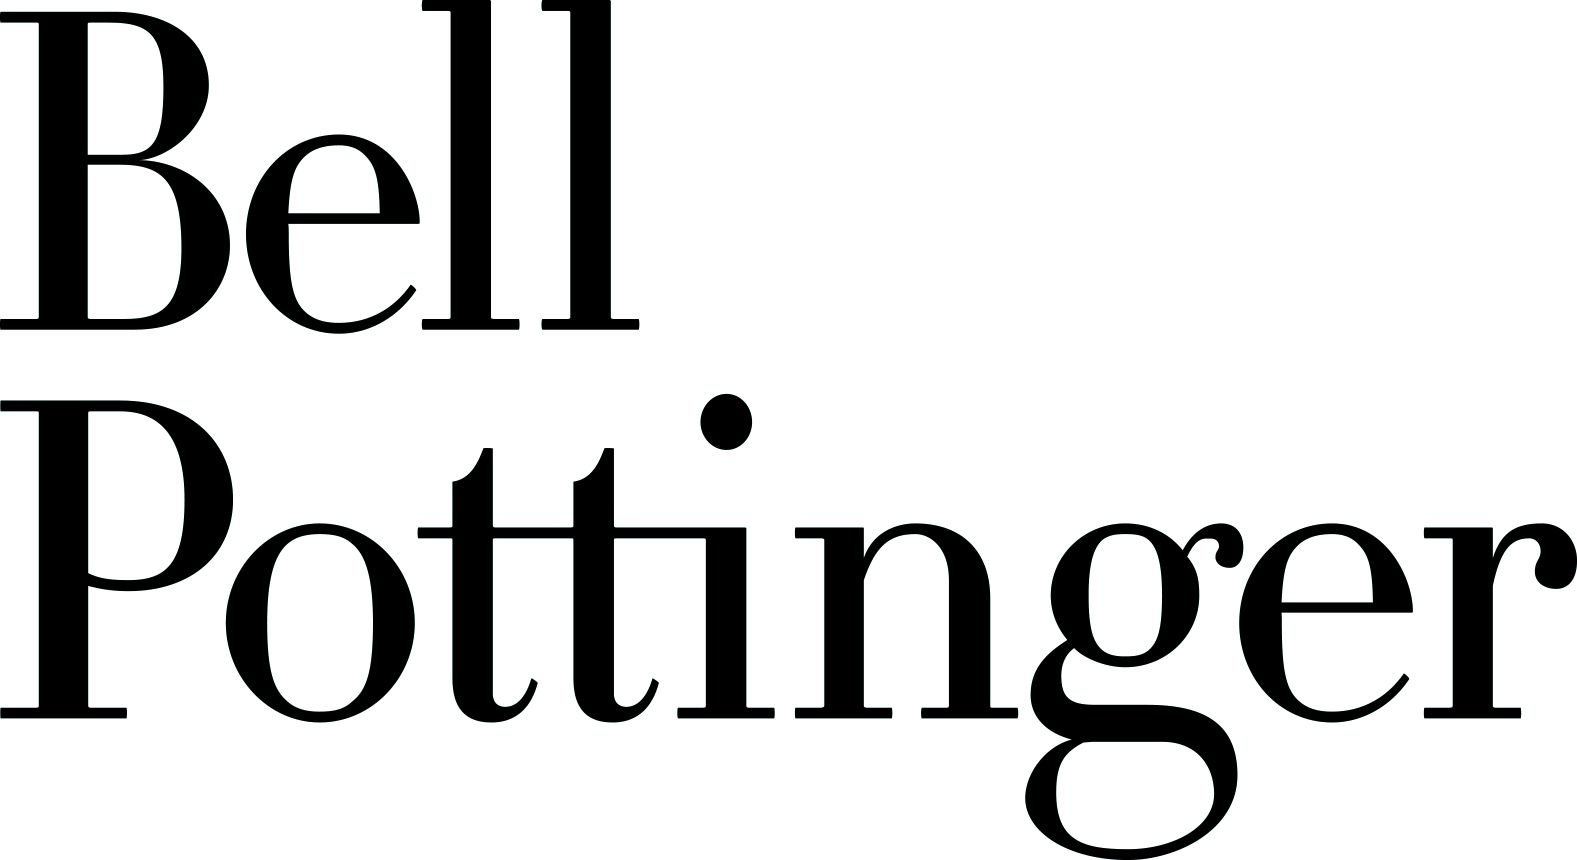 Image result for bellpottinger logo